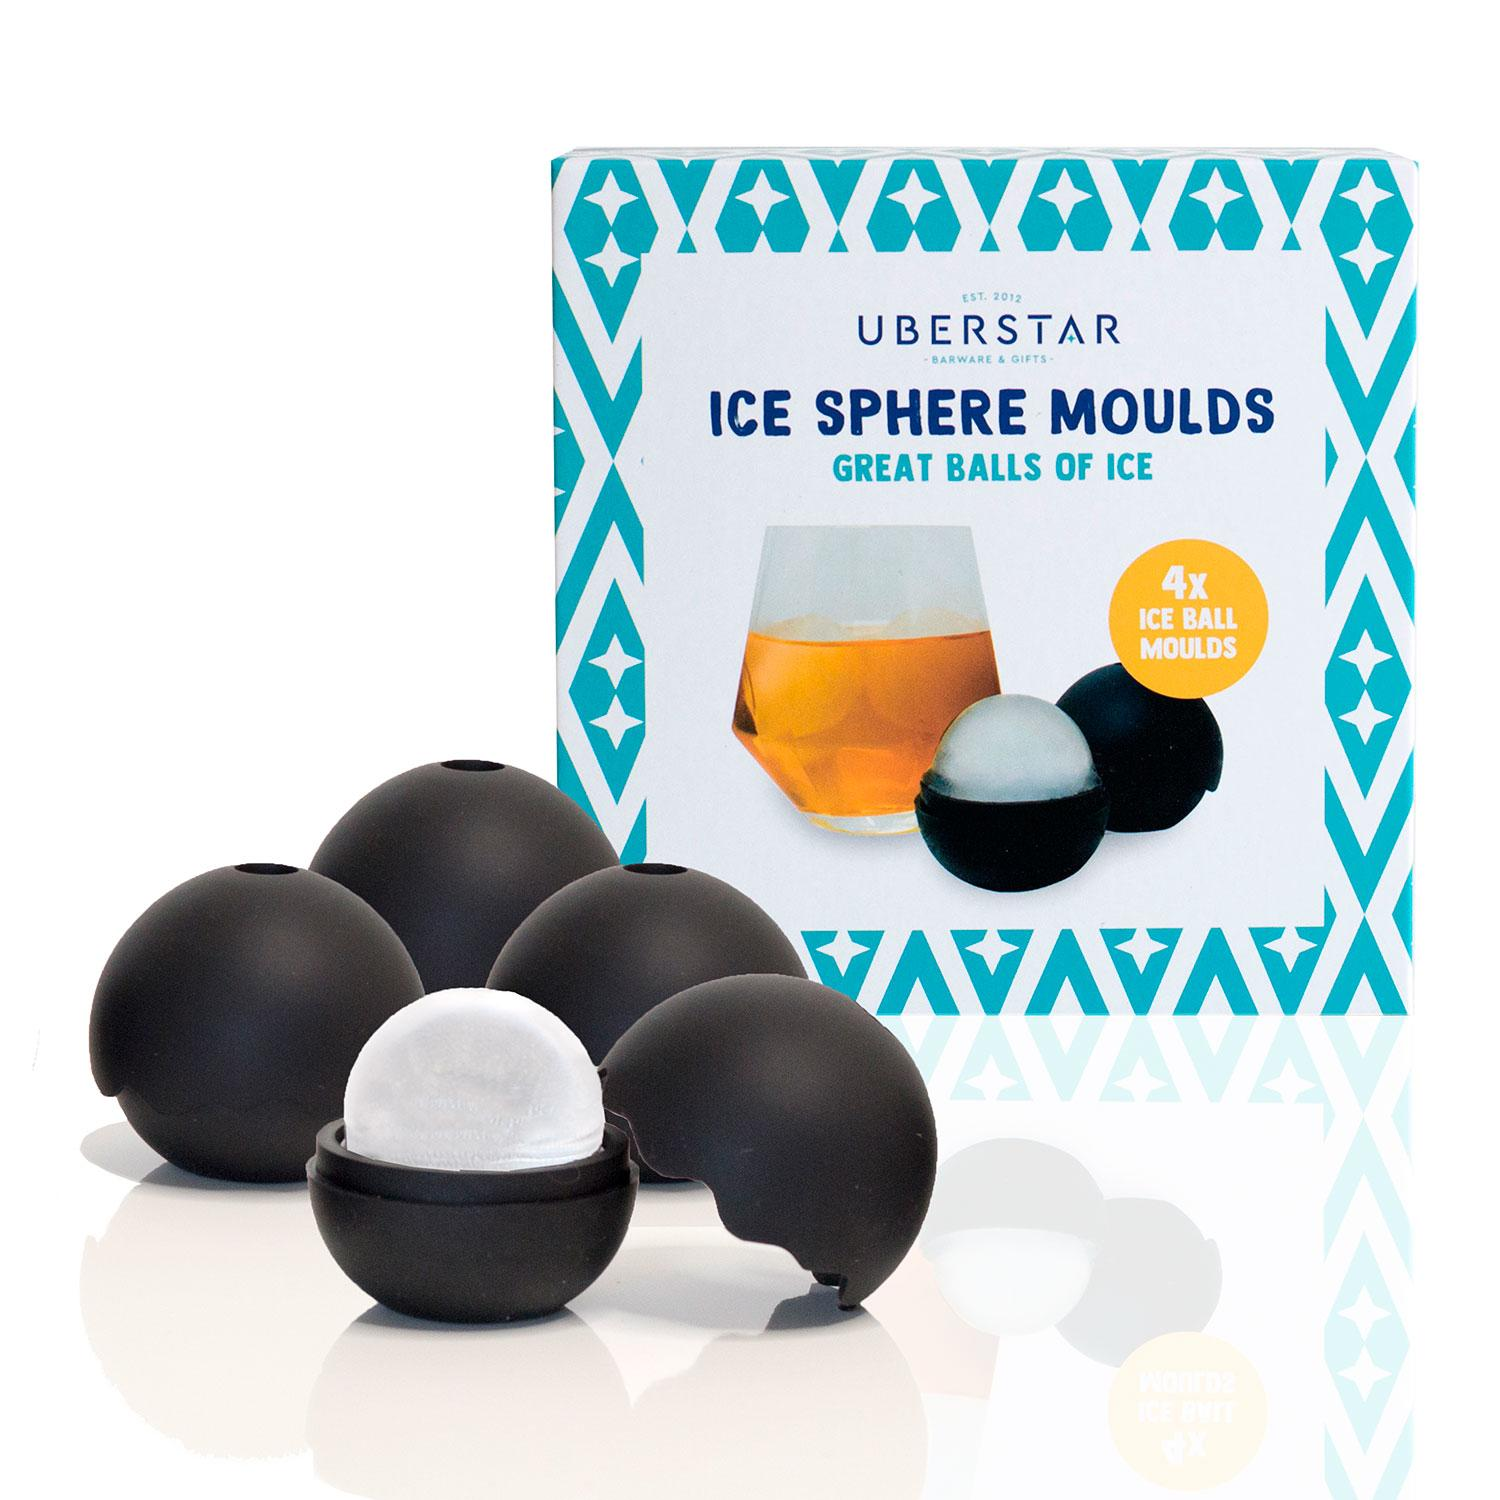 Uberstar Ice Sphere Moulds - Only £14.99